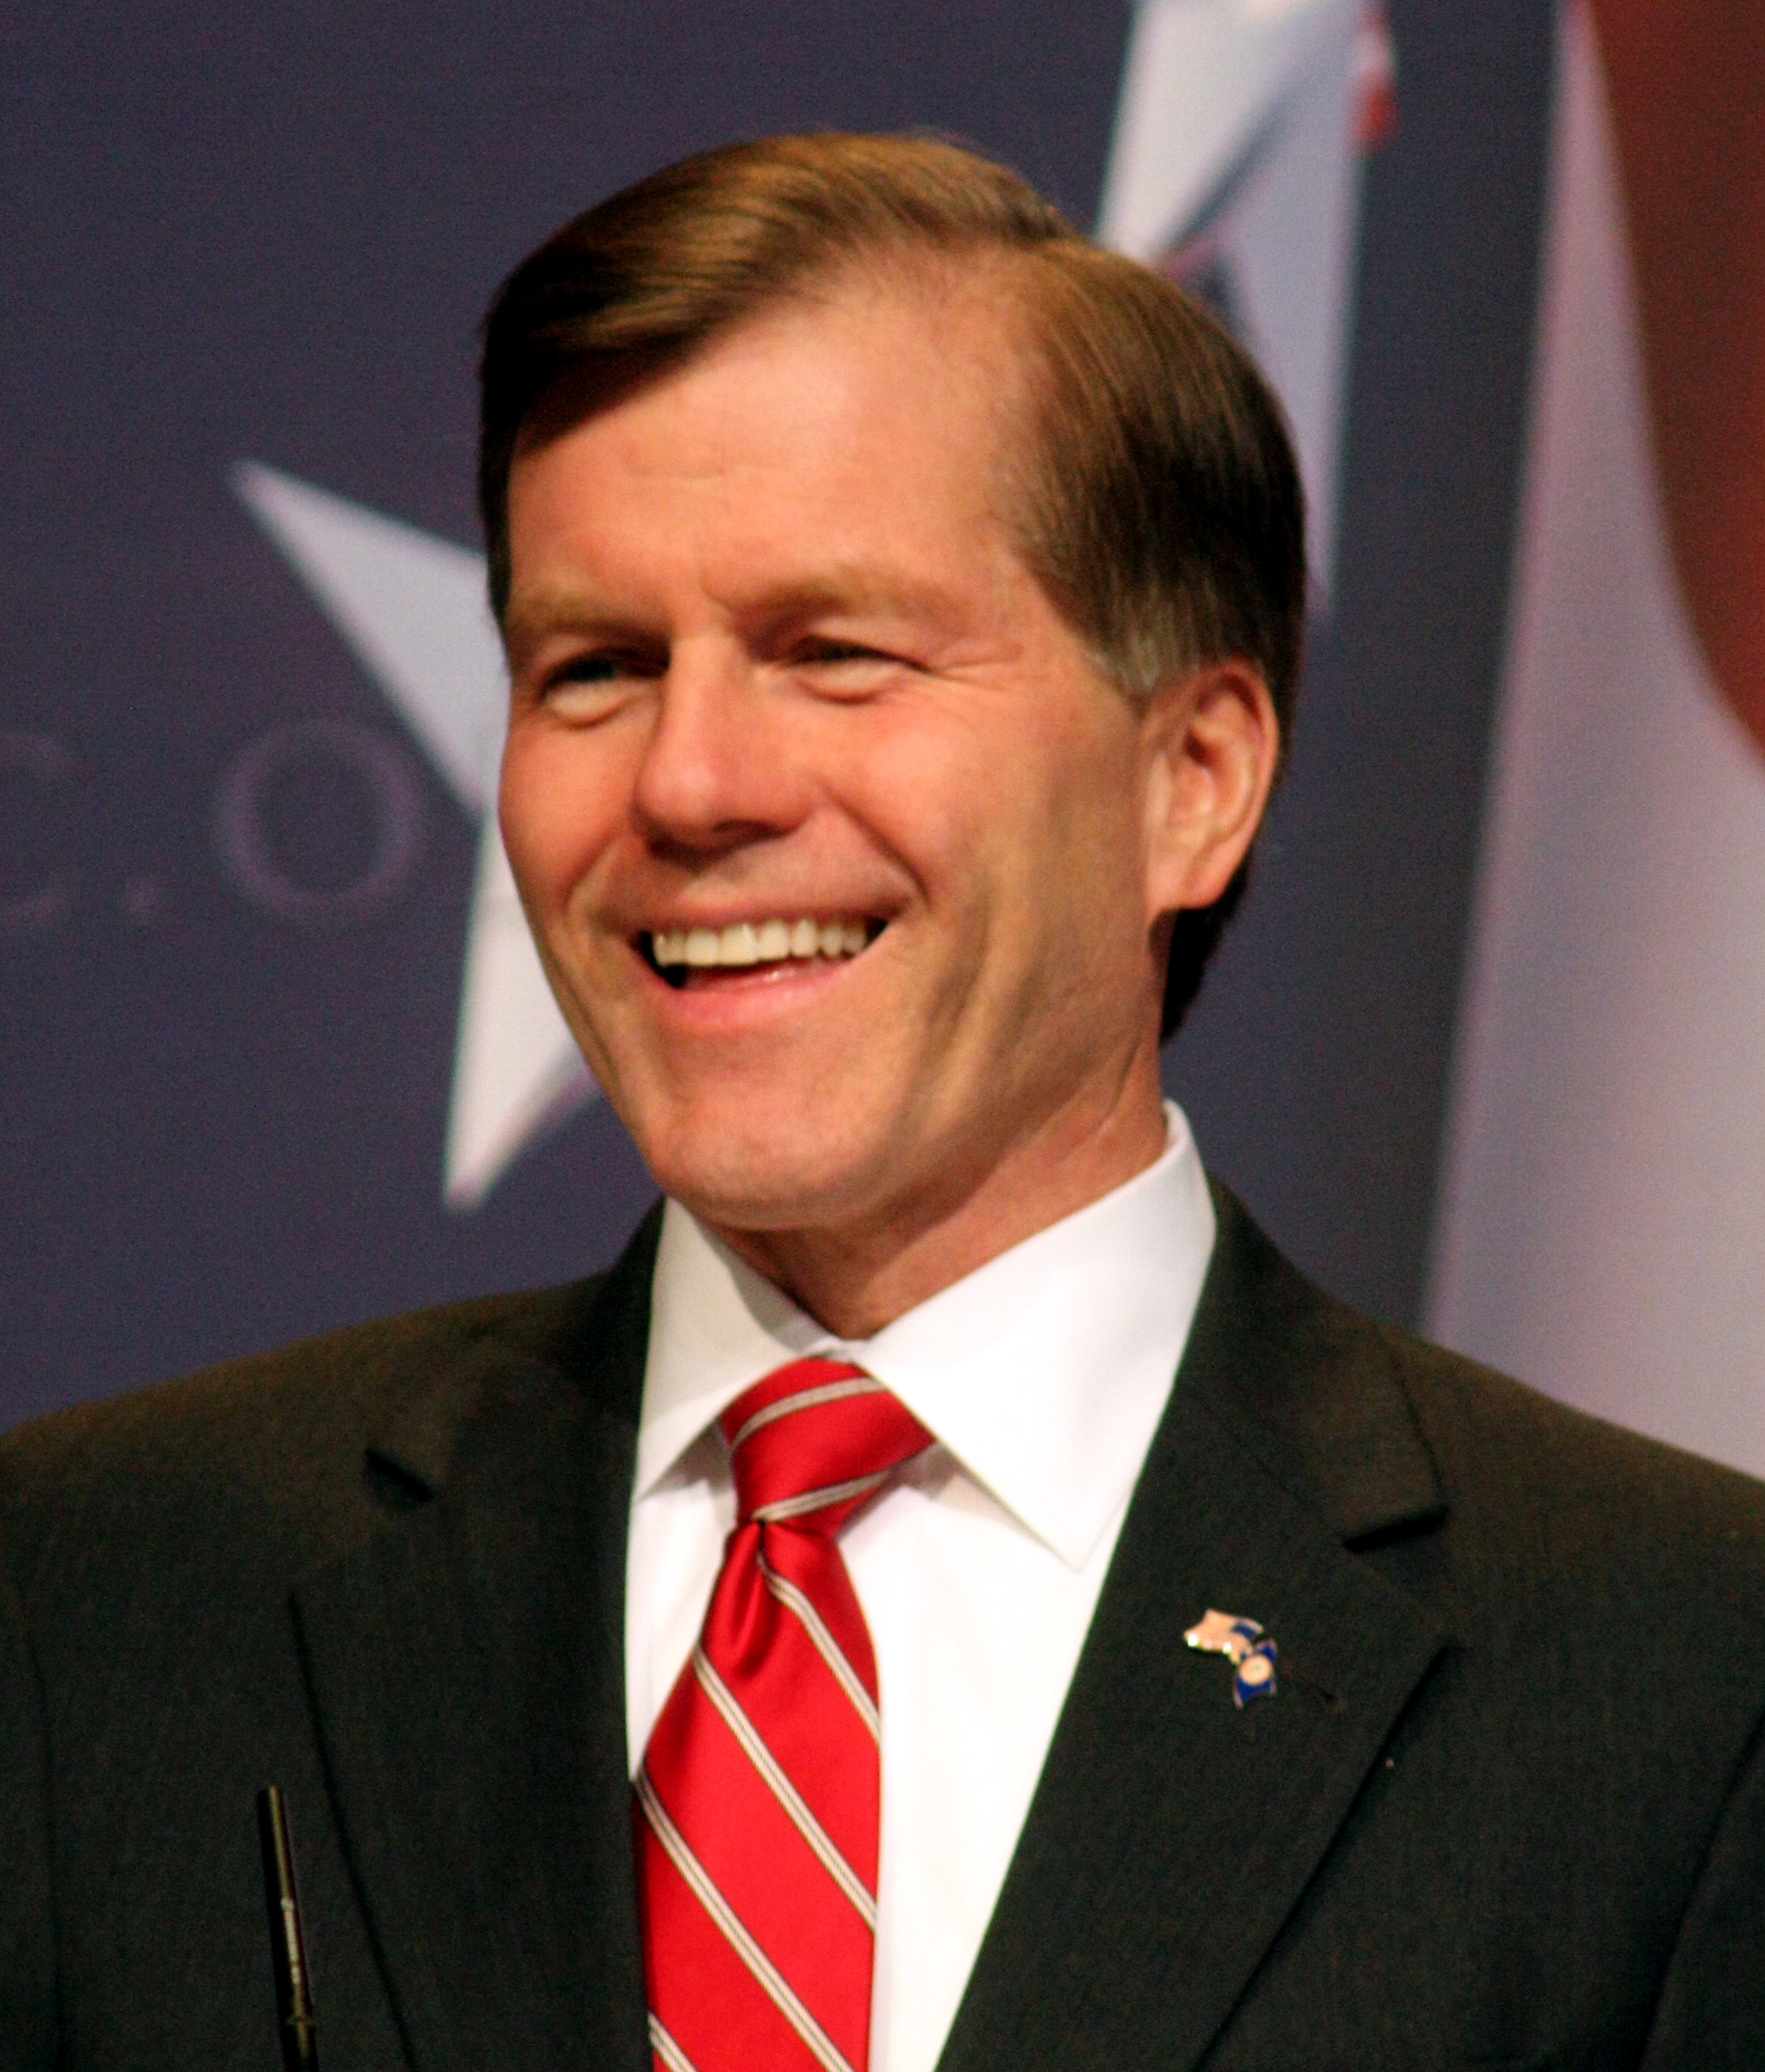 governor bob mcdonnell thesis Mcdonnell announced his candidacy for the 2009 virginia  post released  mcdonnell's thesis from regent university,.